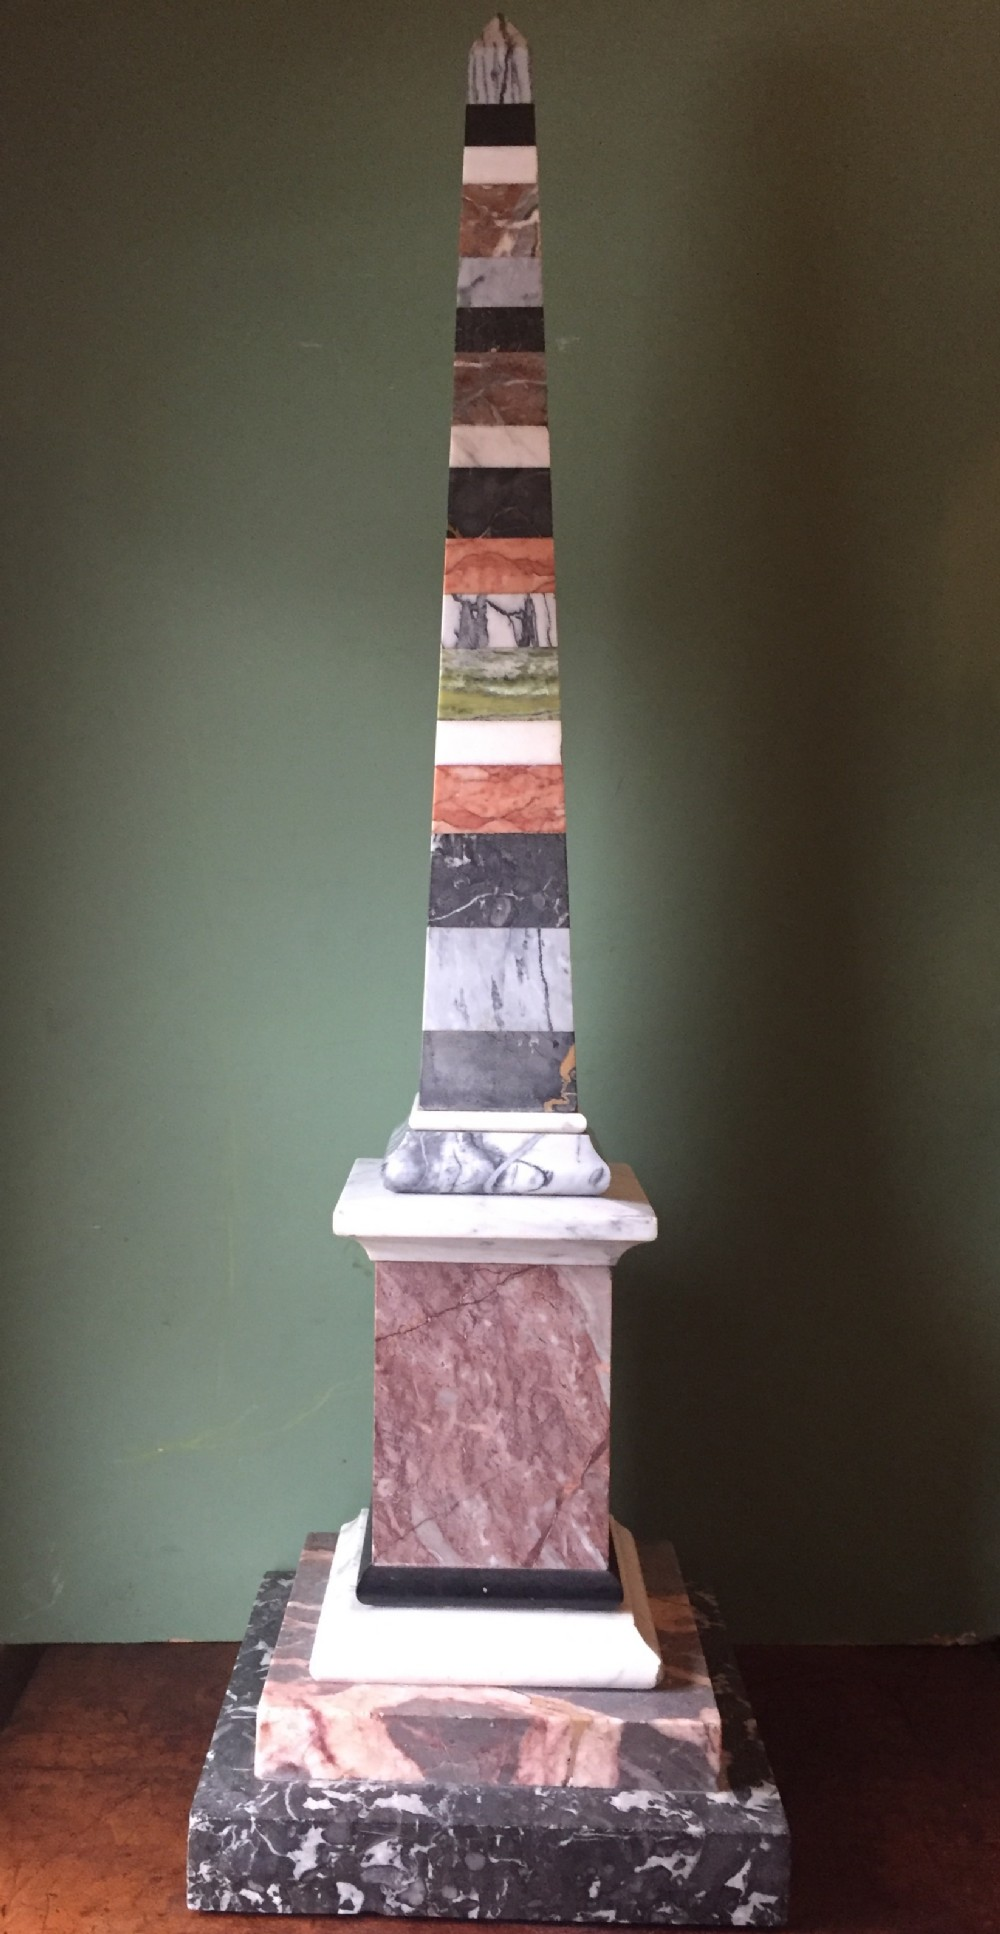 fine and decorative late c19th italian specimen marble obelisk of substantial scale